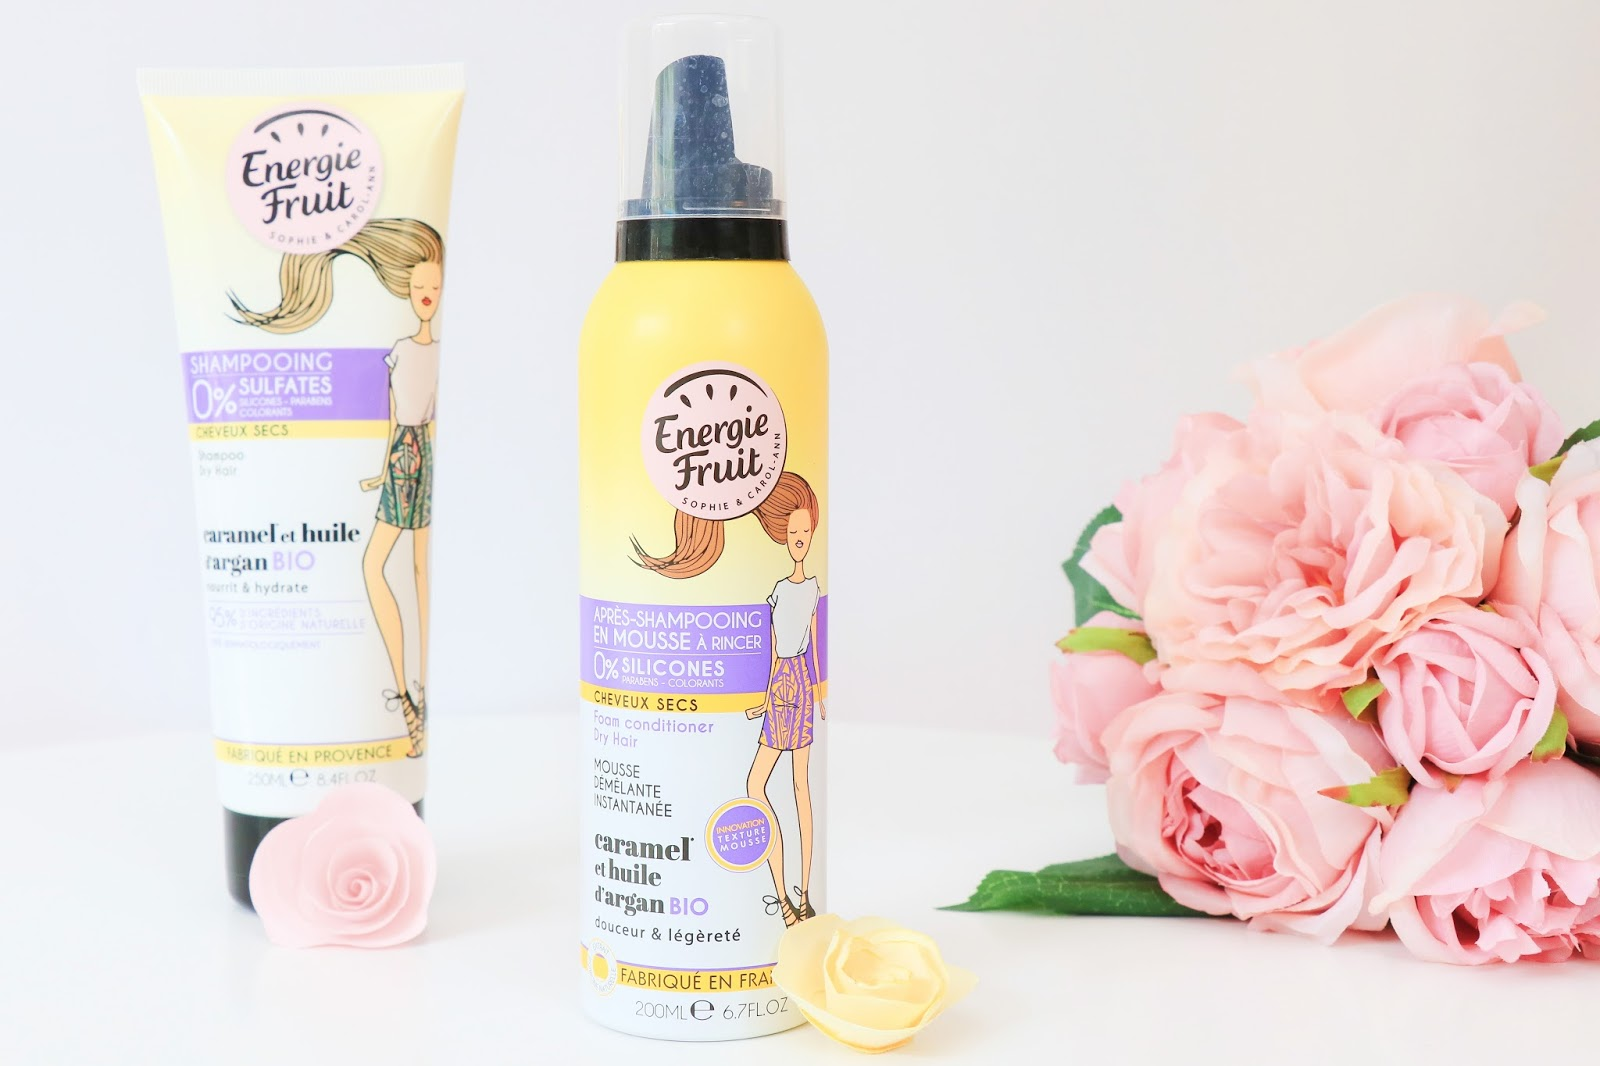 les gommettes de melo gommette avis test energie fruit produit beaute bio sans paraben silicone sulfate colorant savon green eco shampoing apres shampooing sec mousse gel douche corps monoi fleur d'oranger caramel odeur huile d'argan fabriqué en france provence